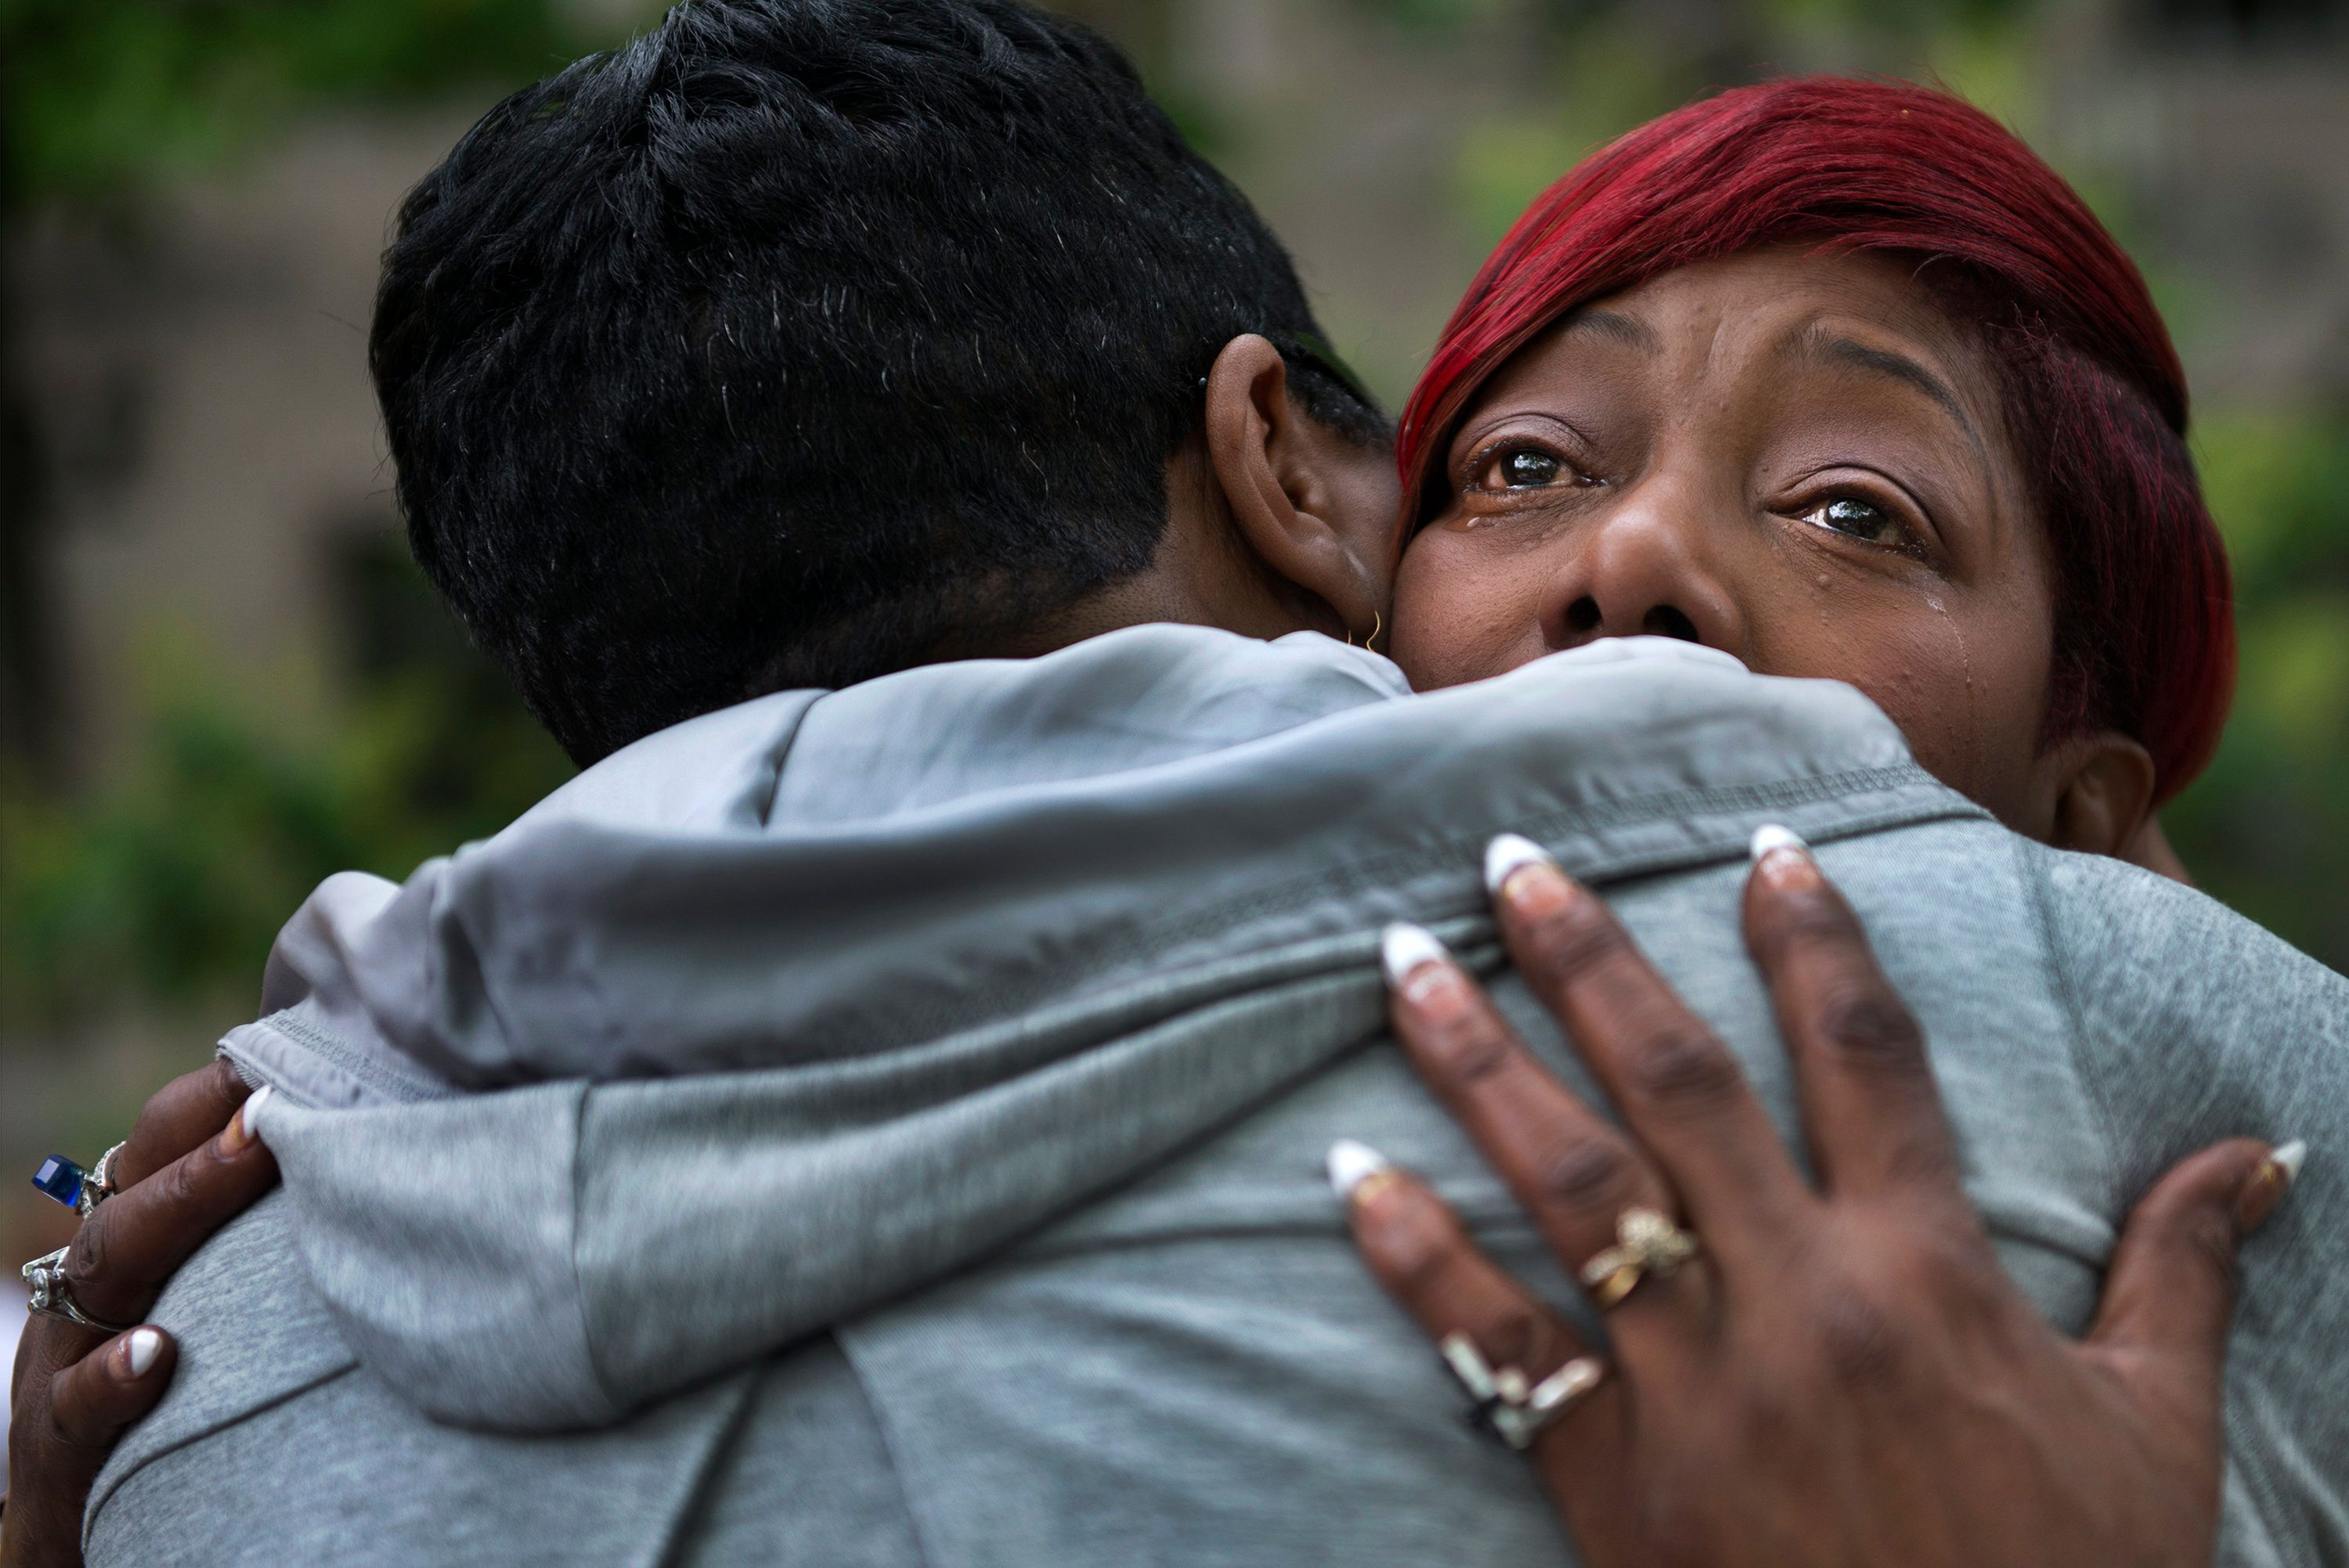 WASHINGTON, DC - MAY 9: Maria Hamilton, founder of Mothers For Justice United, cries as she gets a hug from Pastor Traci Blac